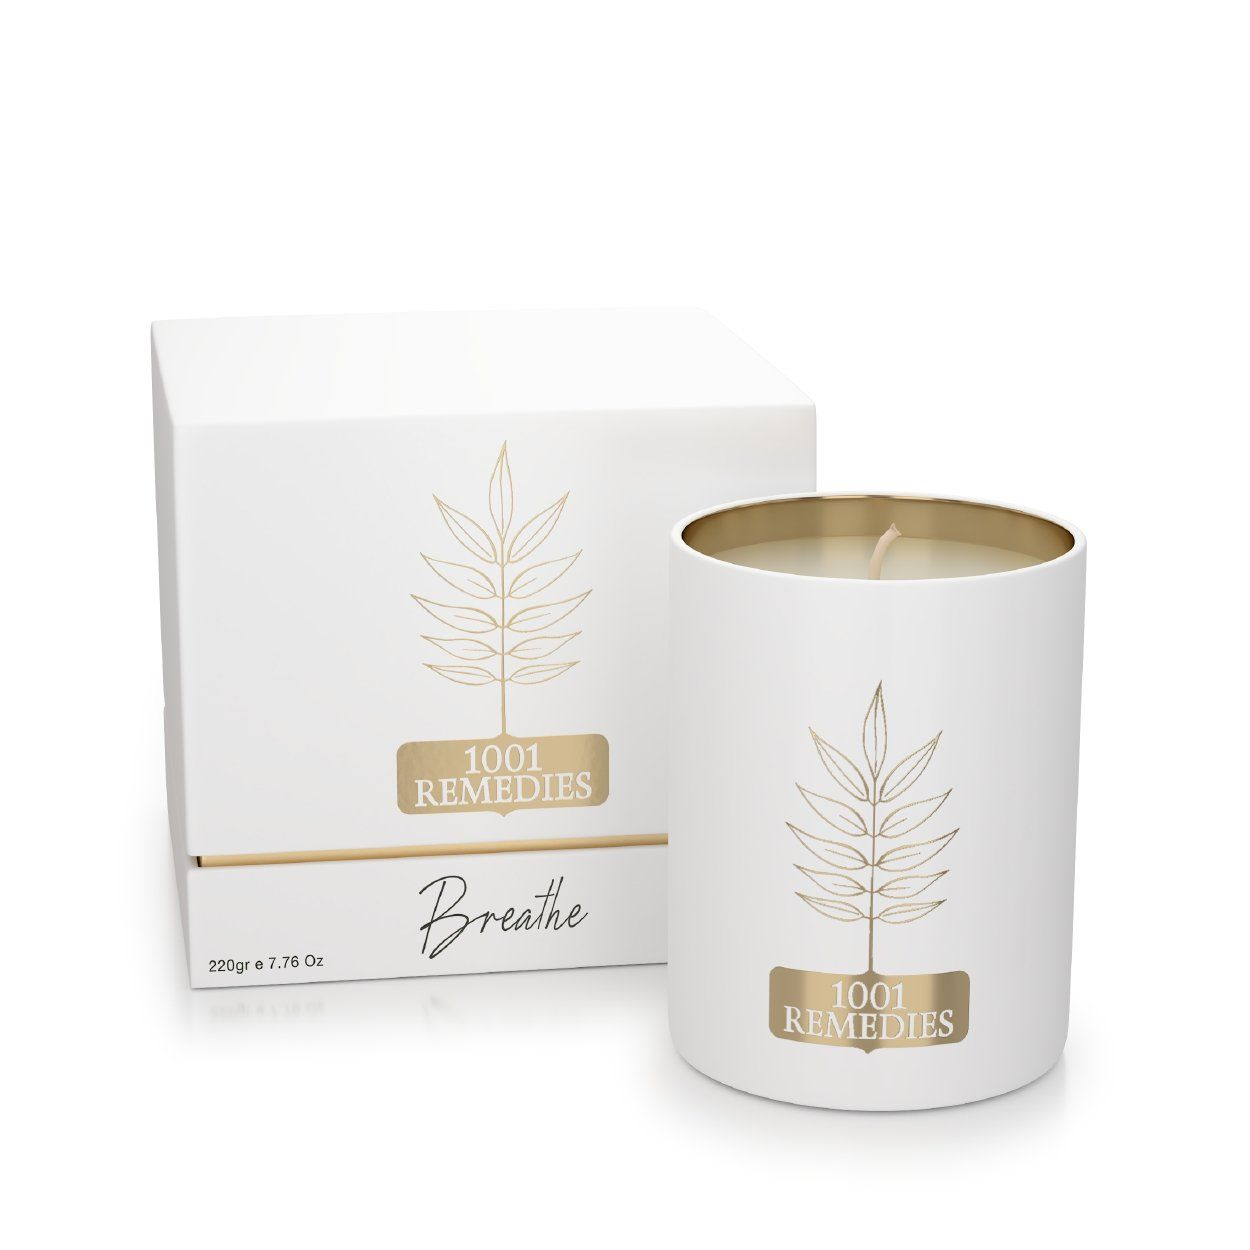 Breathe Candle - 1001 Remedies